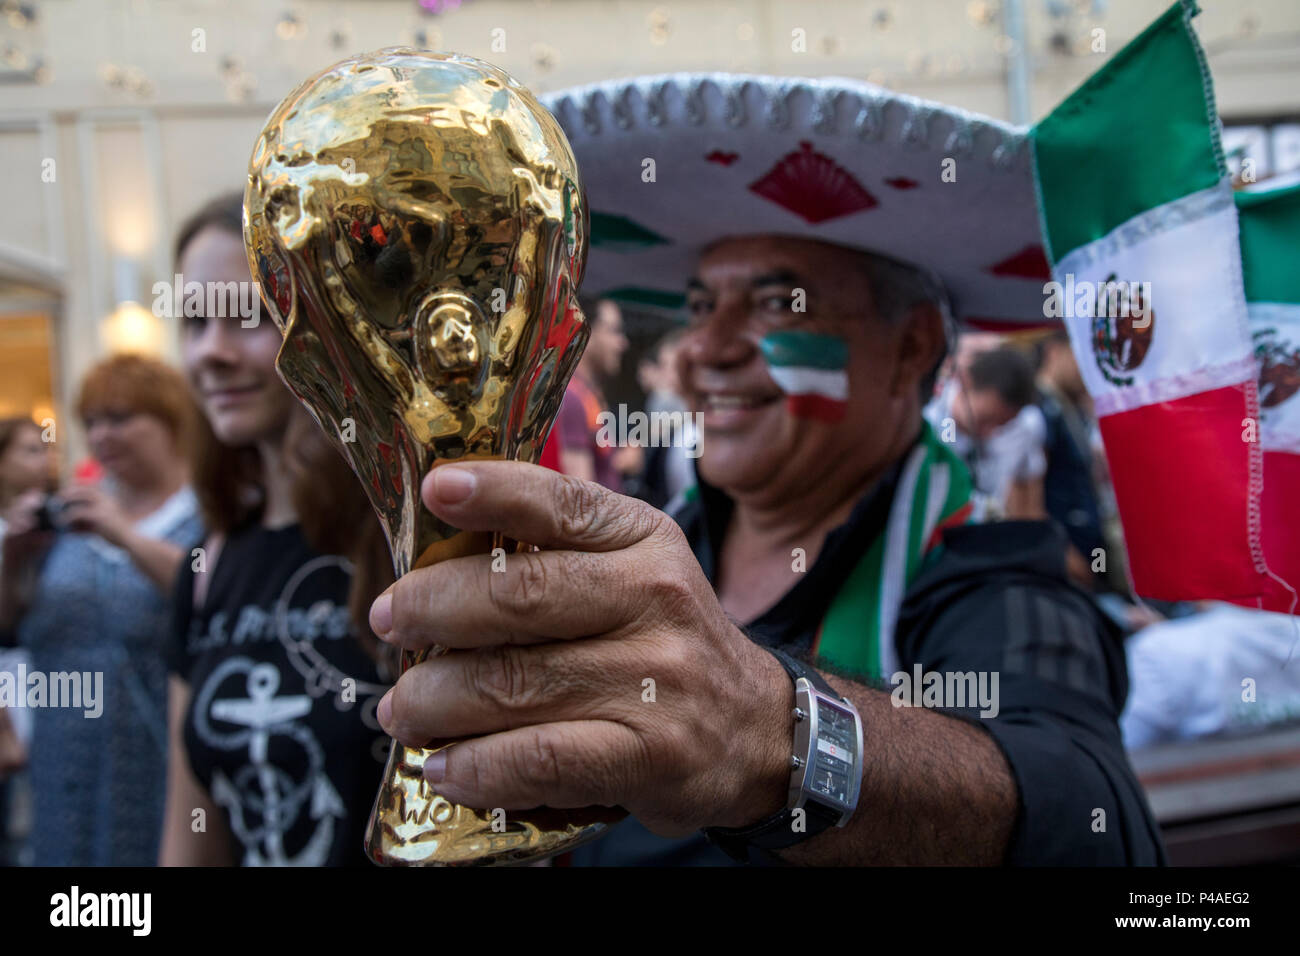 Moscow, Russia. 21st June, 2018. Mexican football fans cheer on Nikolskaya street during The World Cup Tournament in Moscow, Russia Stock Photo